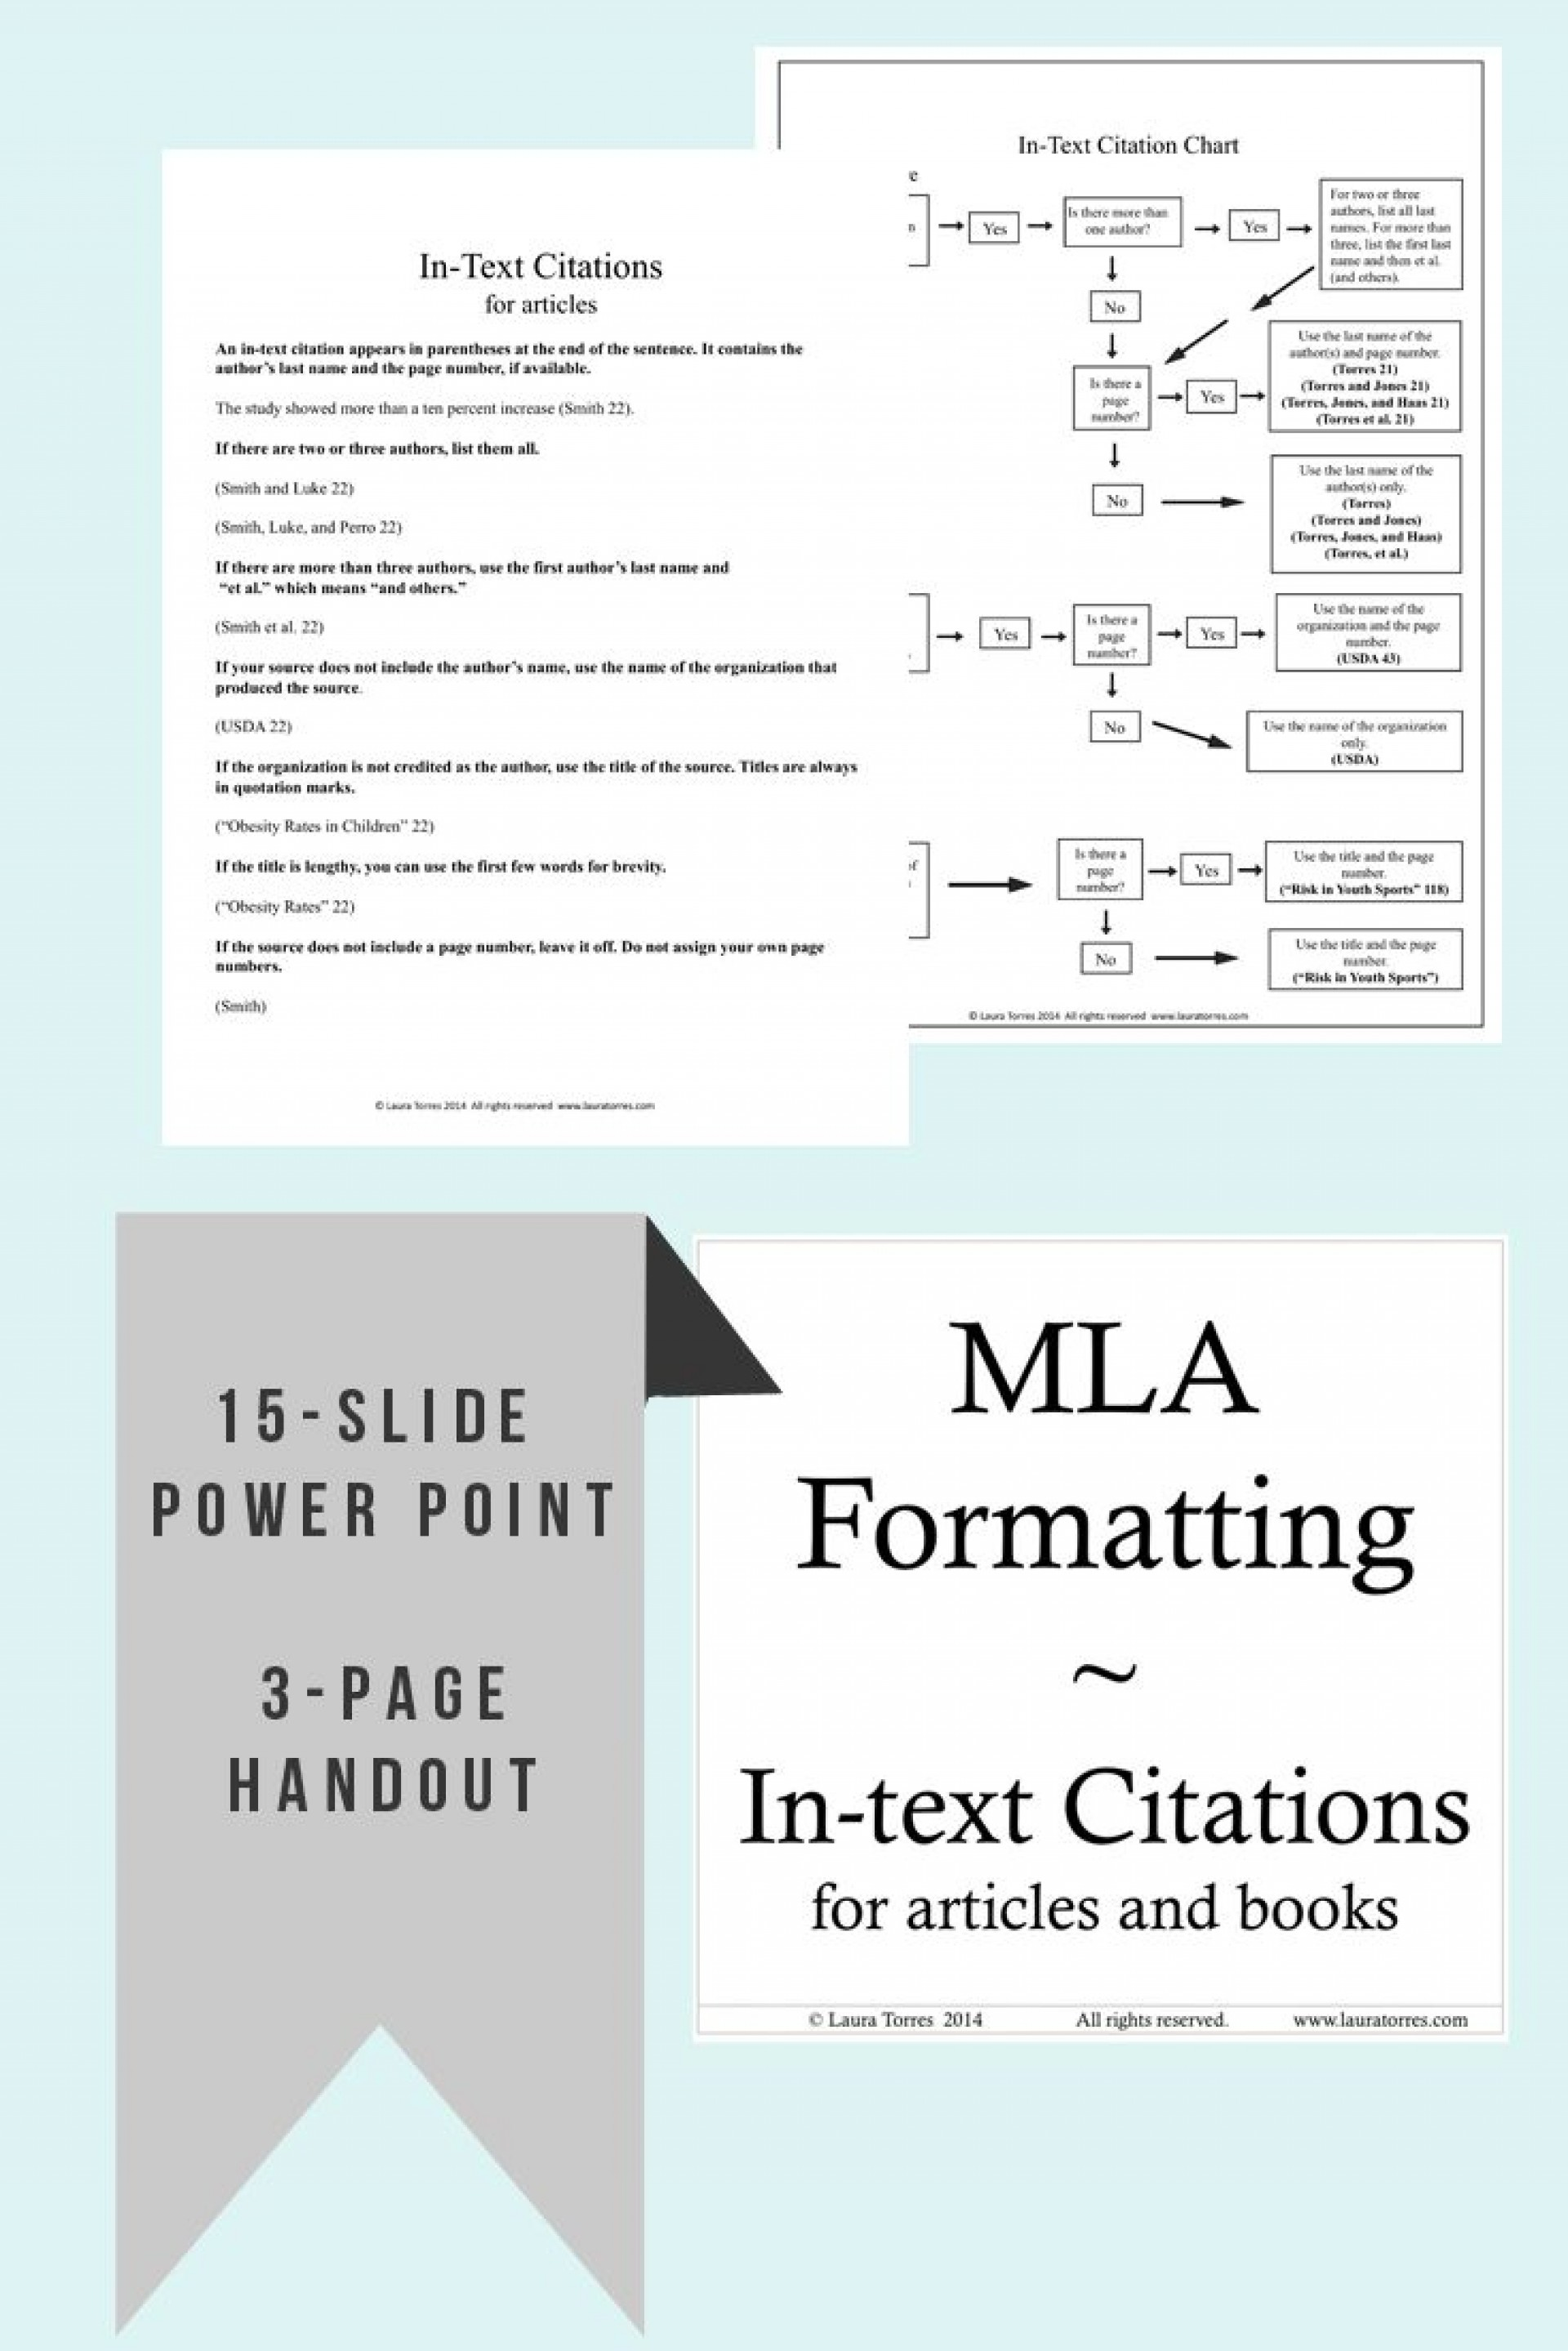 005 Research Paper Mla Format In Text Wonderful Citations 1920